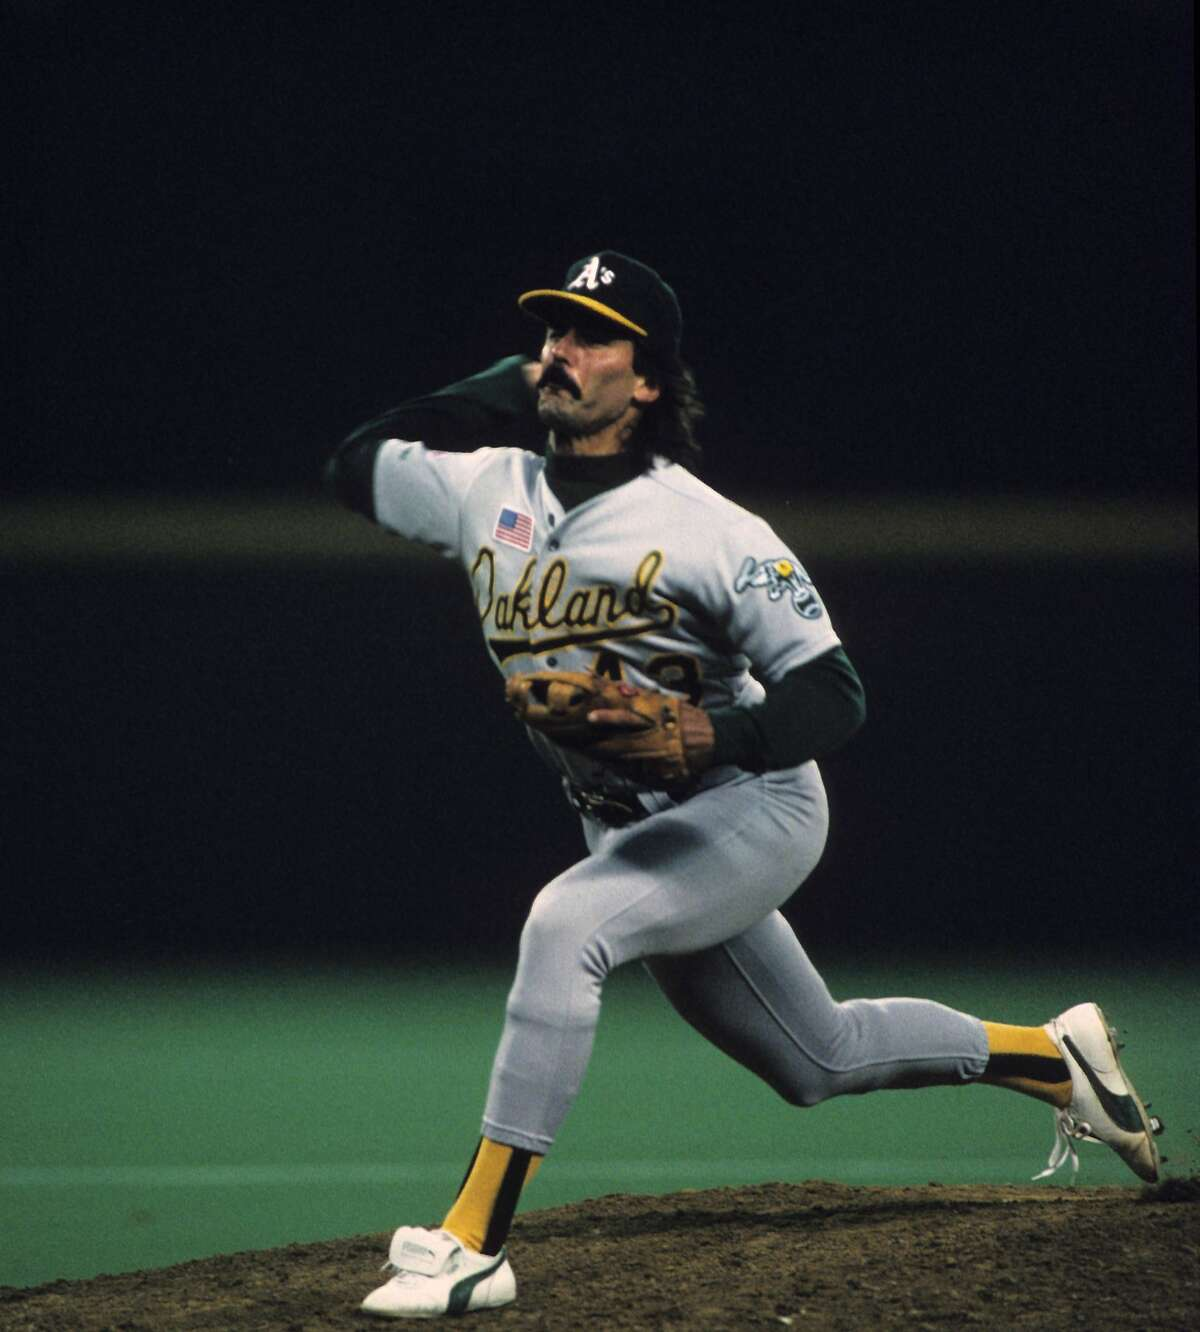 Dennis Eckersley had a 0.61 ERA in 1990. But a player with six career hits scored the winning run on him in Game 2.